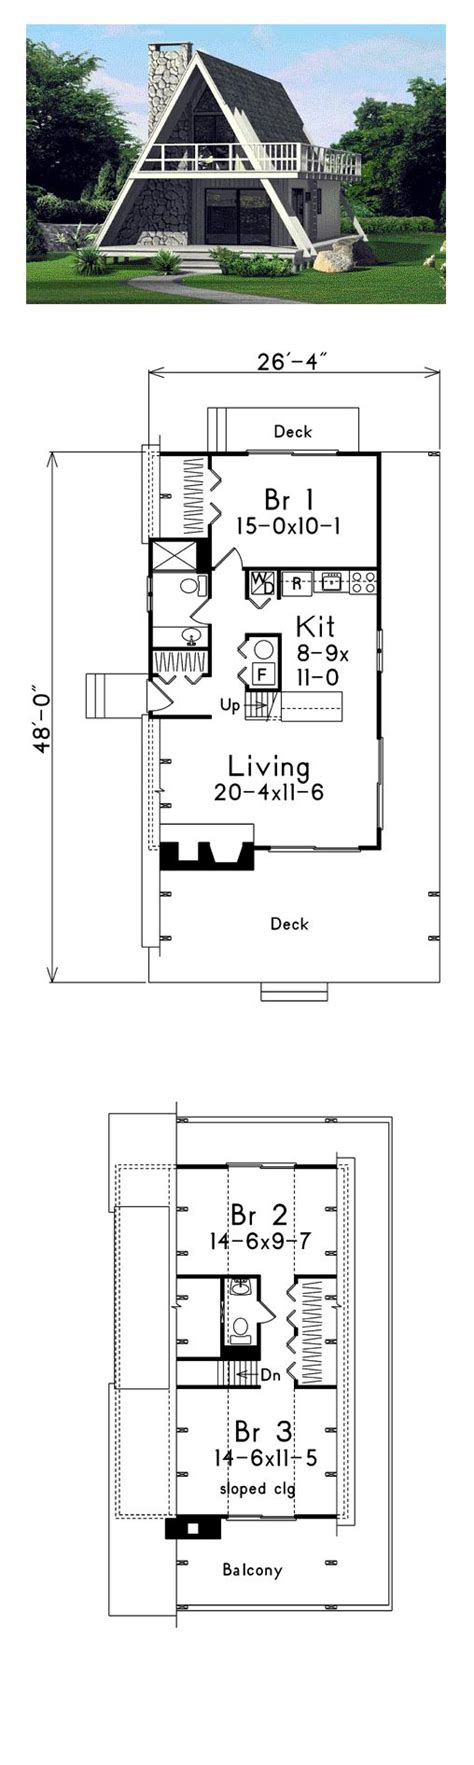 a frame cabin floor plans a frame cabin floor plans with loft so replica houses